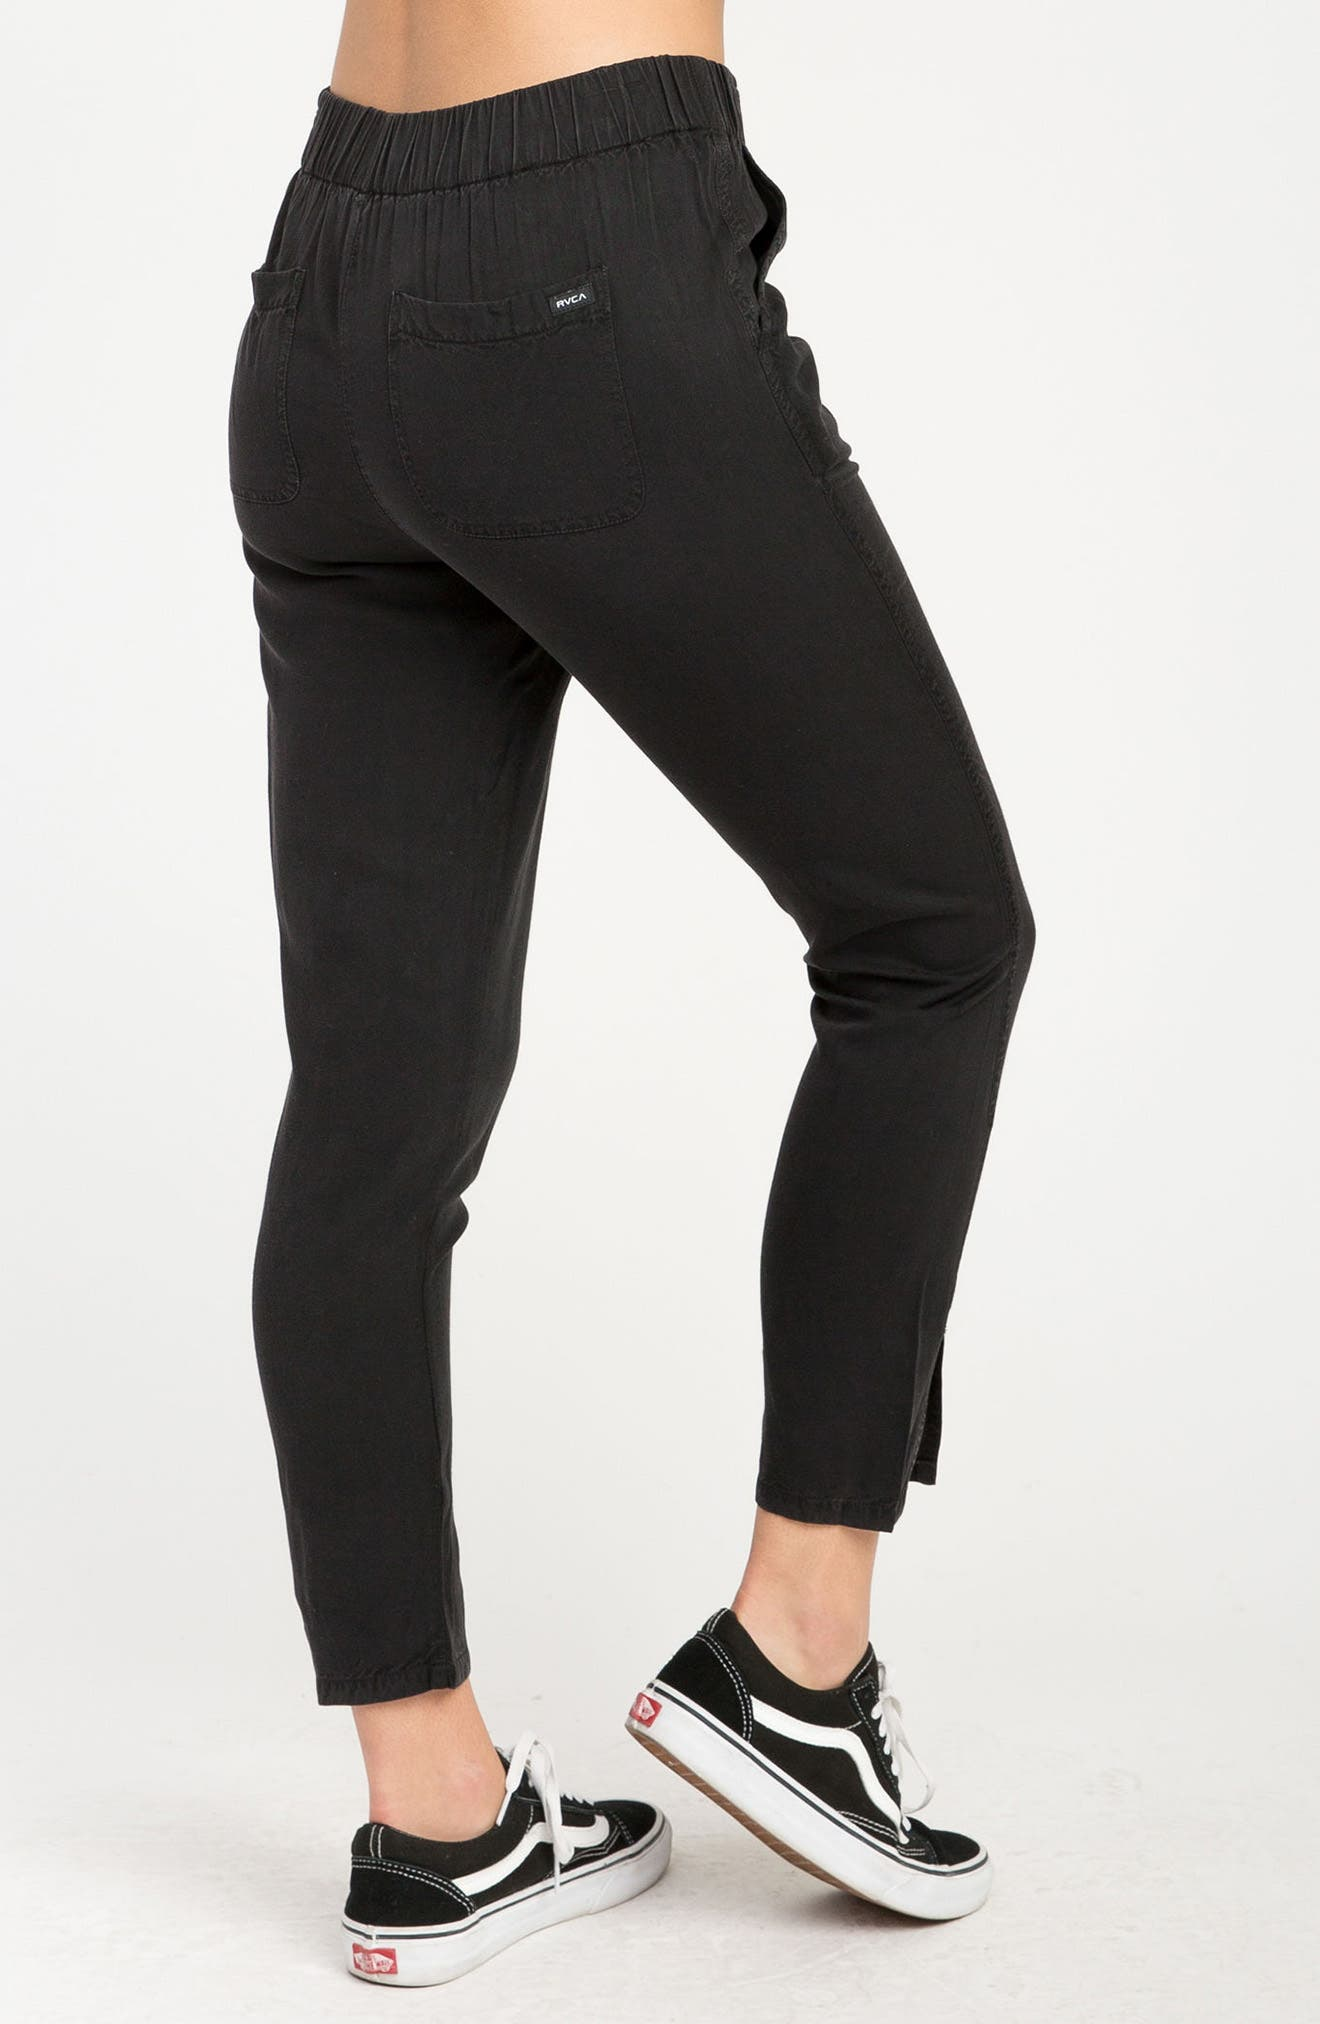 Chill Vibes Ankle Pants,                             Alternate thumbnail 7, color,                             001